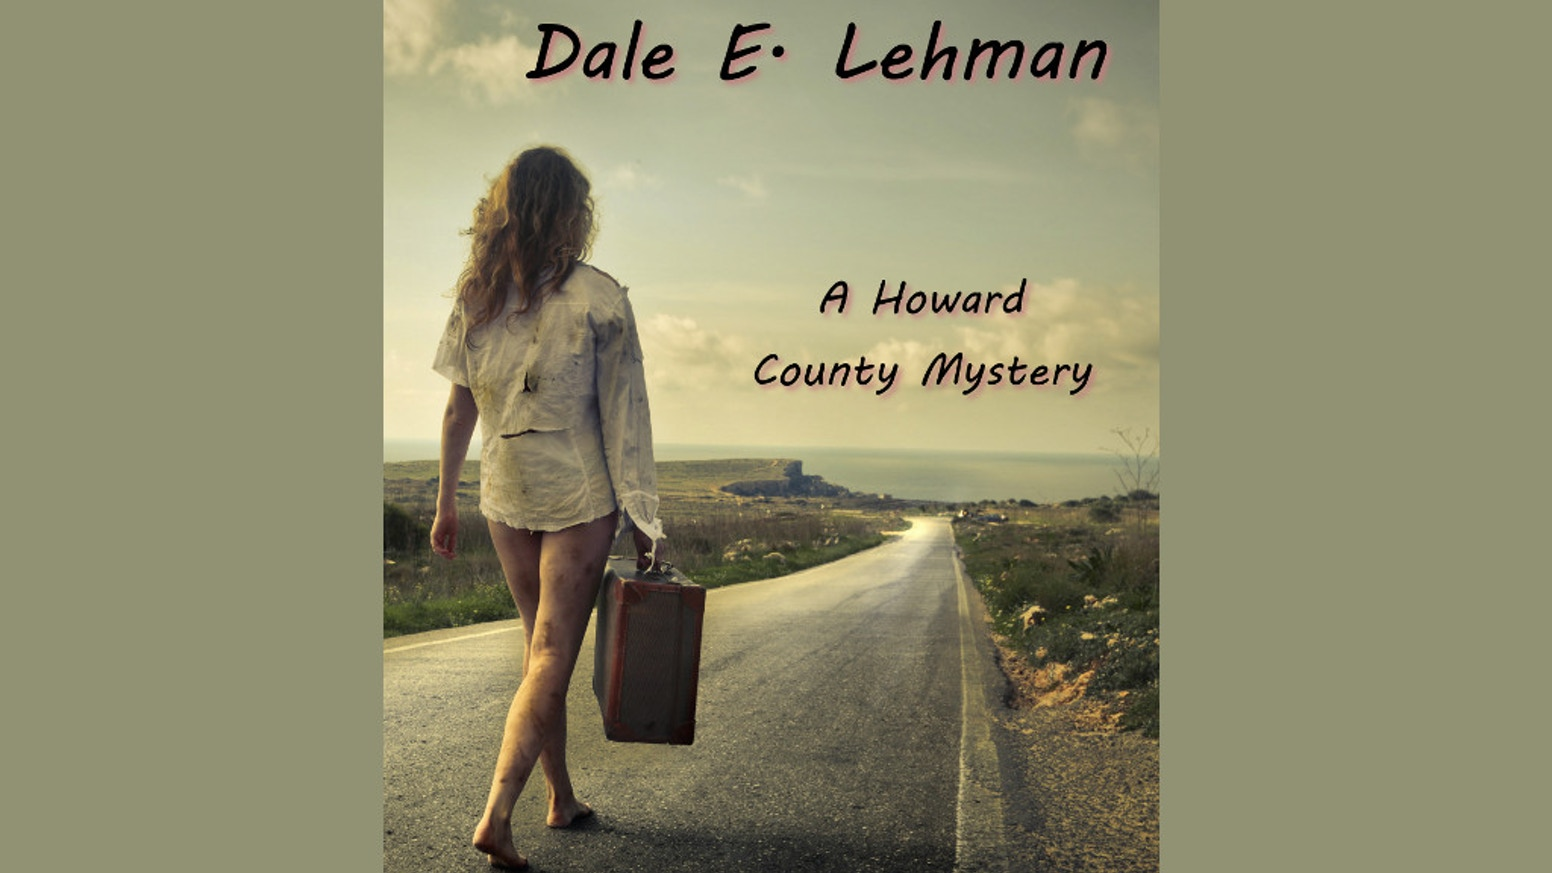 Detective Lieutenant Rick Peller confronts the unsolved mystery of his wife's death and uncovers the shattering truth.